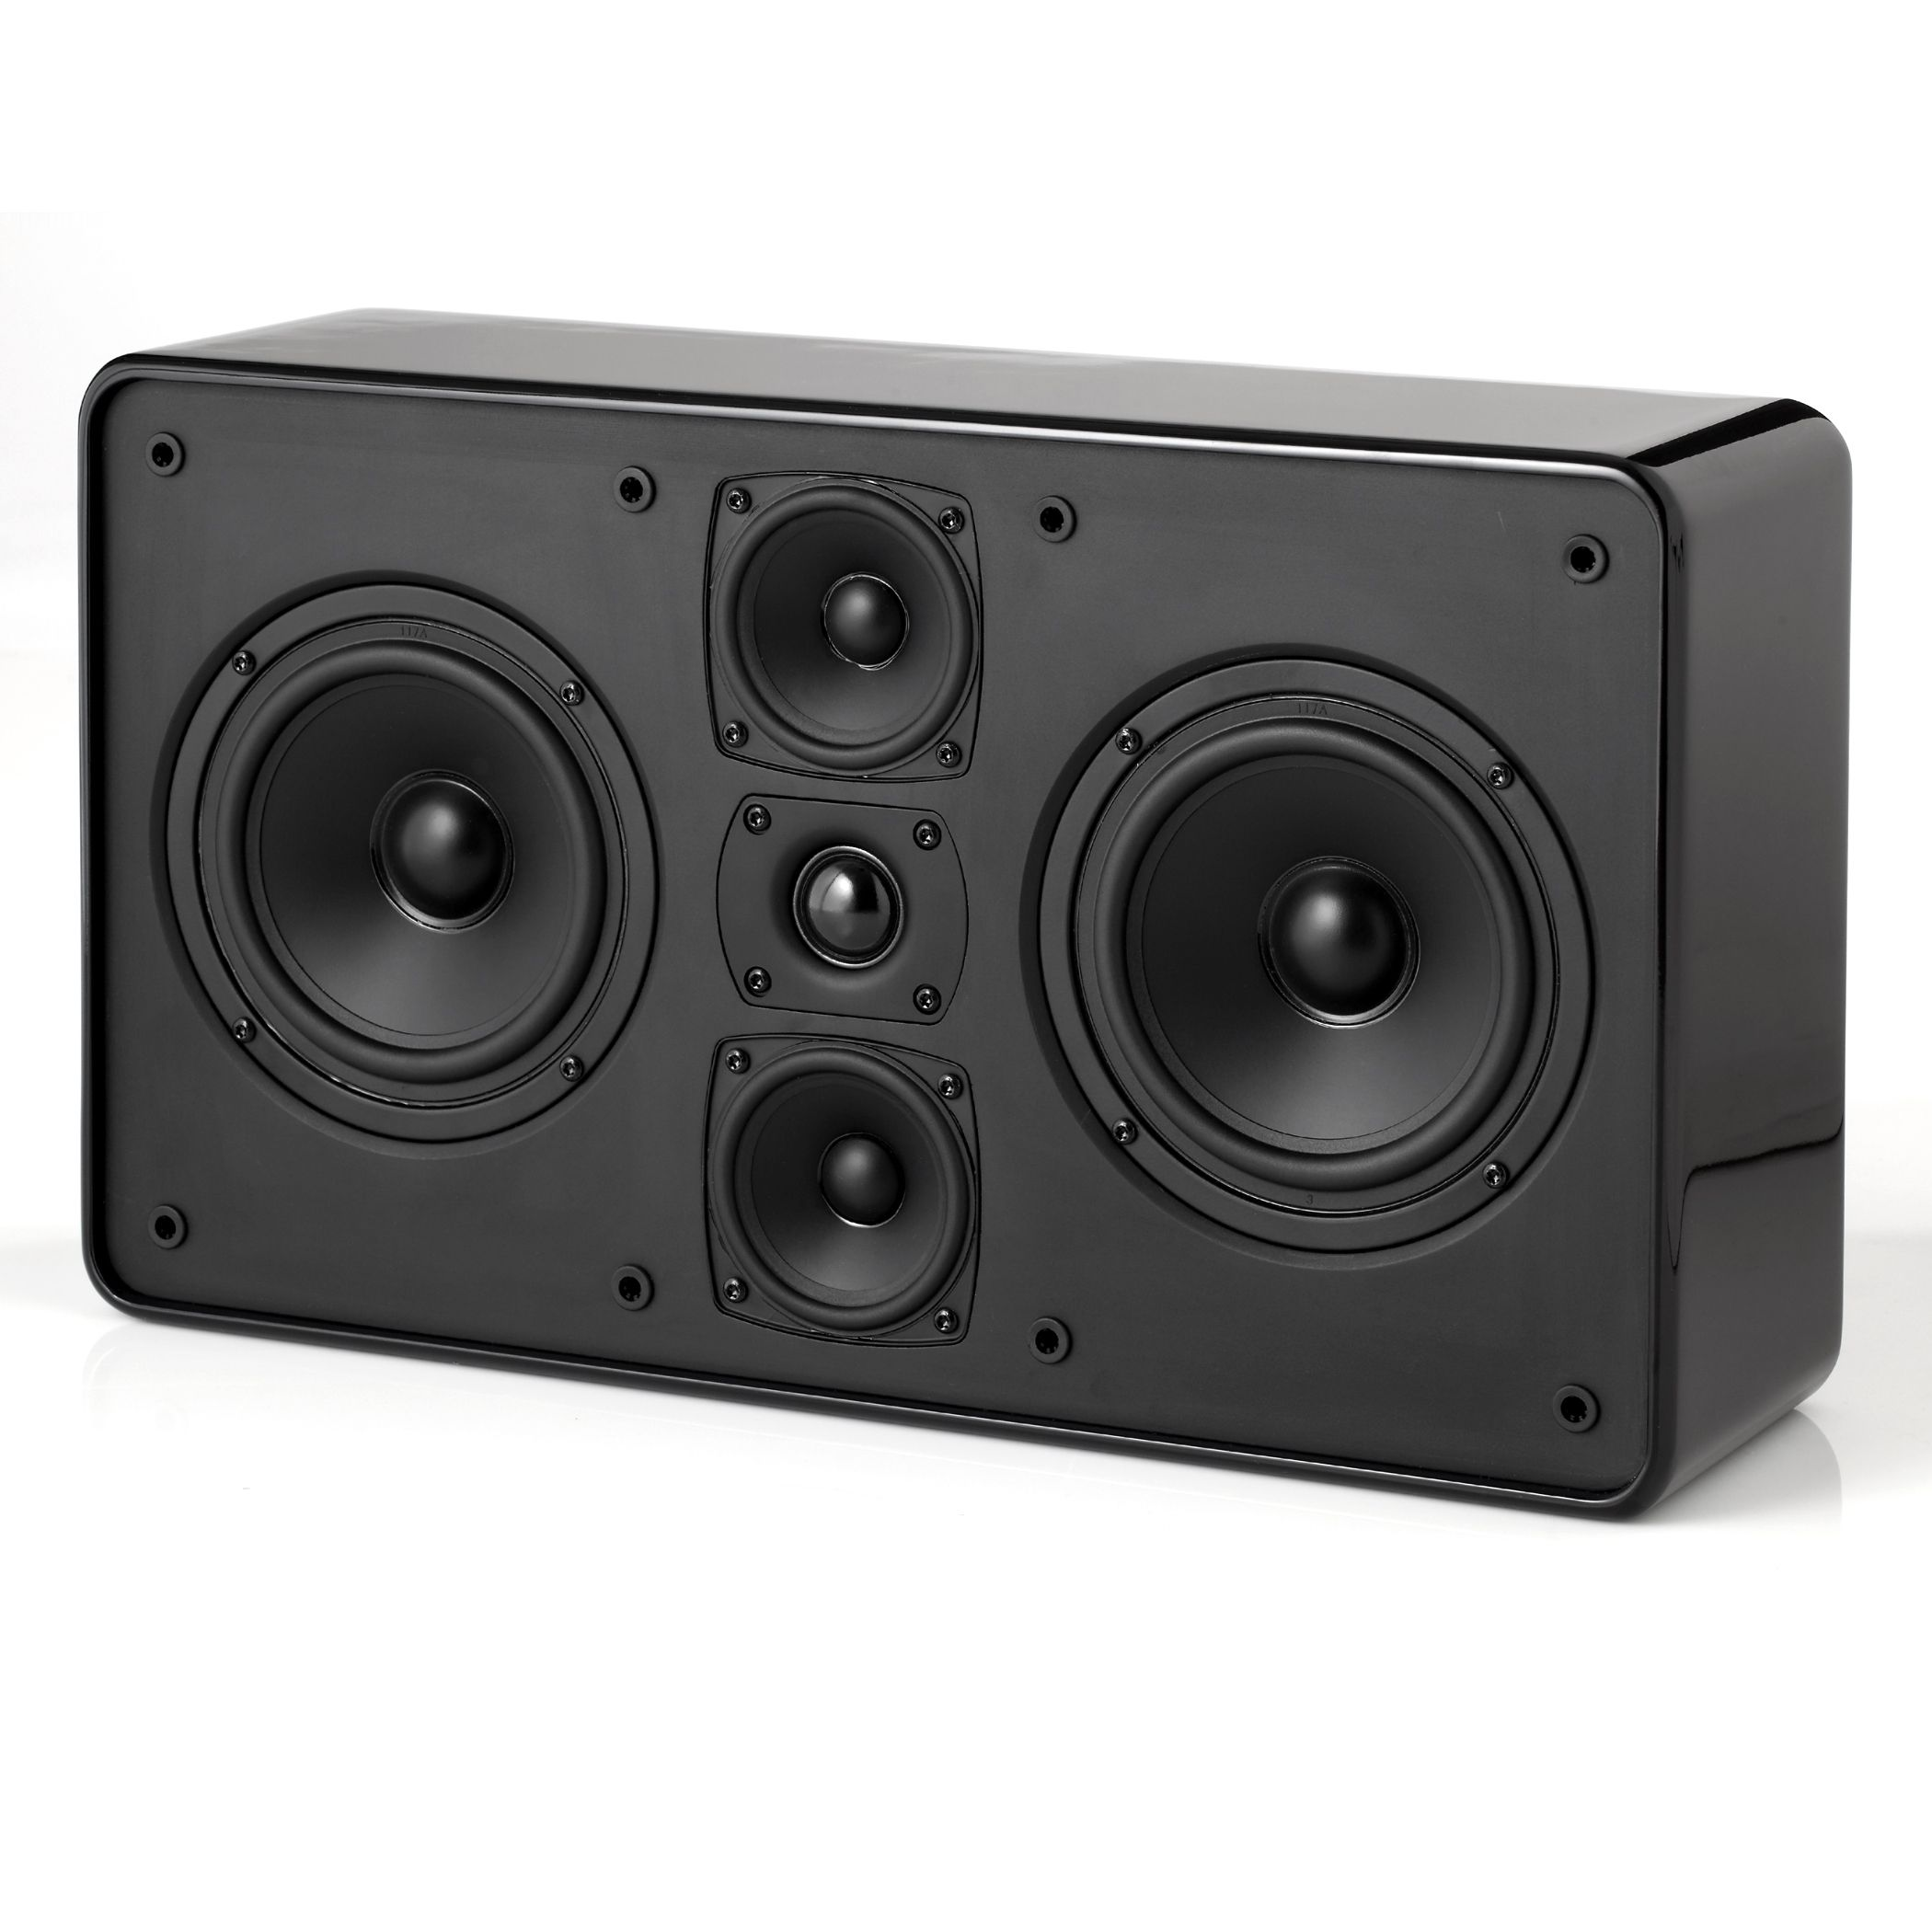 JAMO D500 LCR / surround Black (stk)